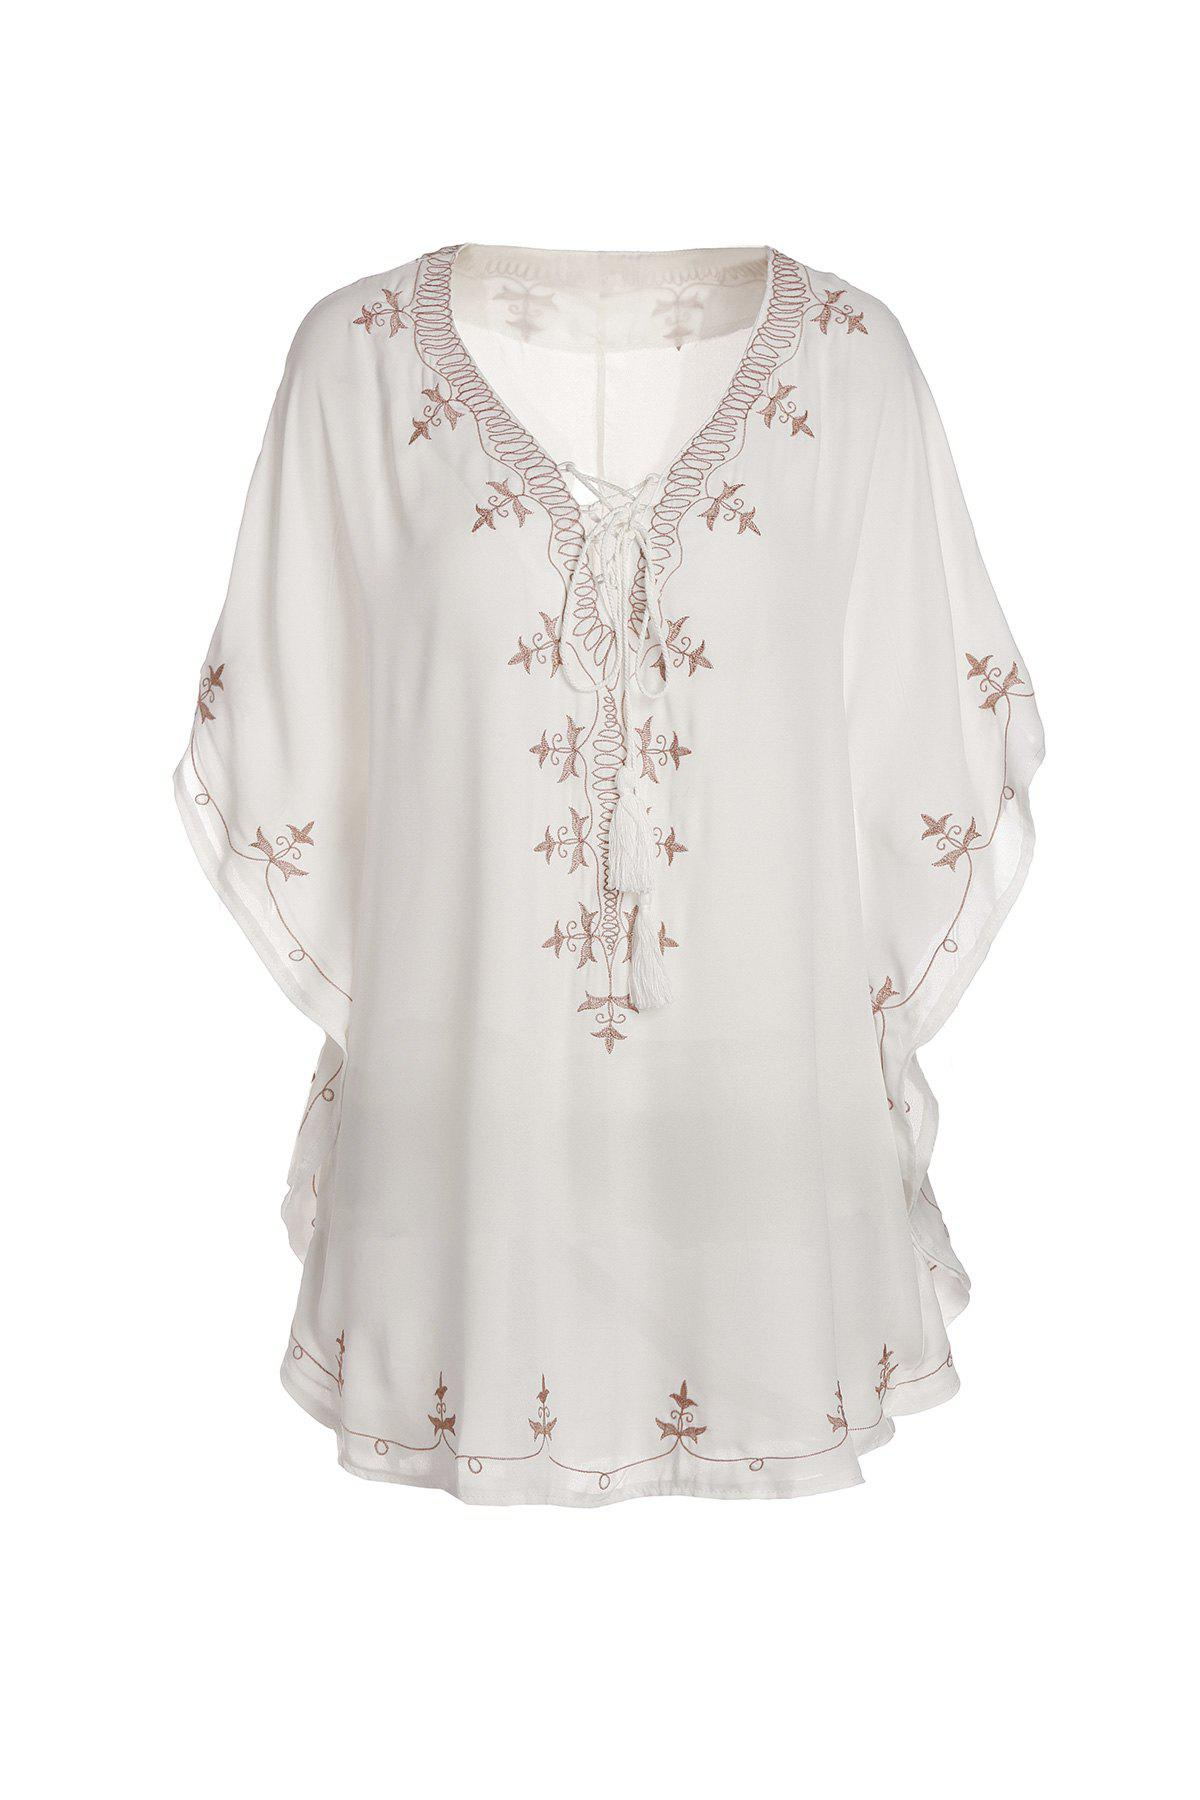 Stylish Women's V-Neck Half Sleeve Embroidered Cover-Up - WHITE ONE SIZE(FIT SIZE XS TO M)